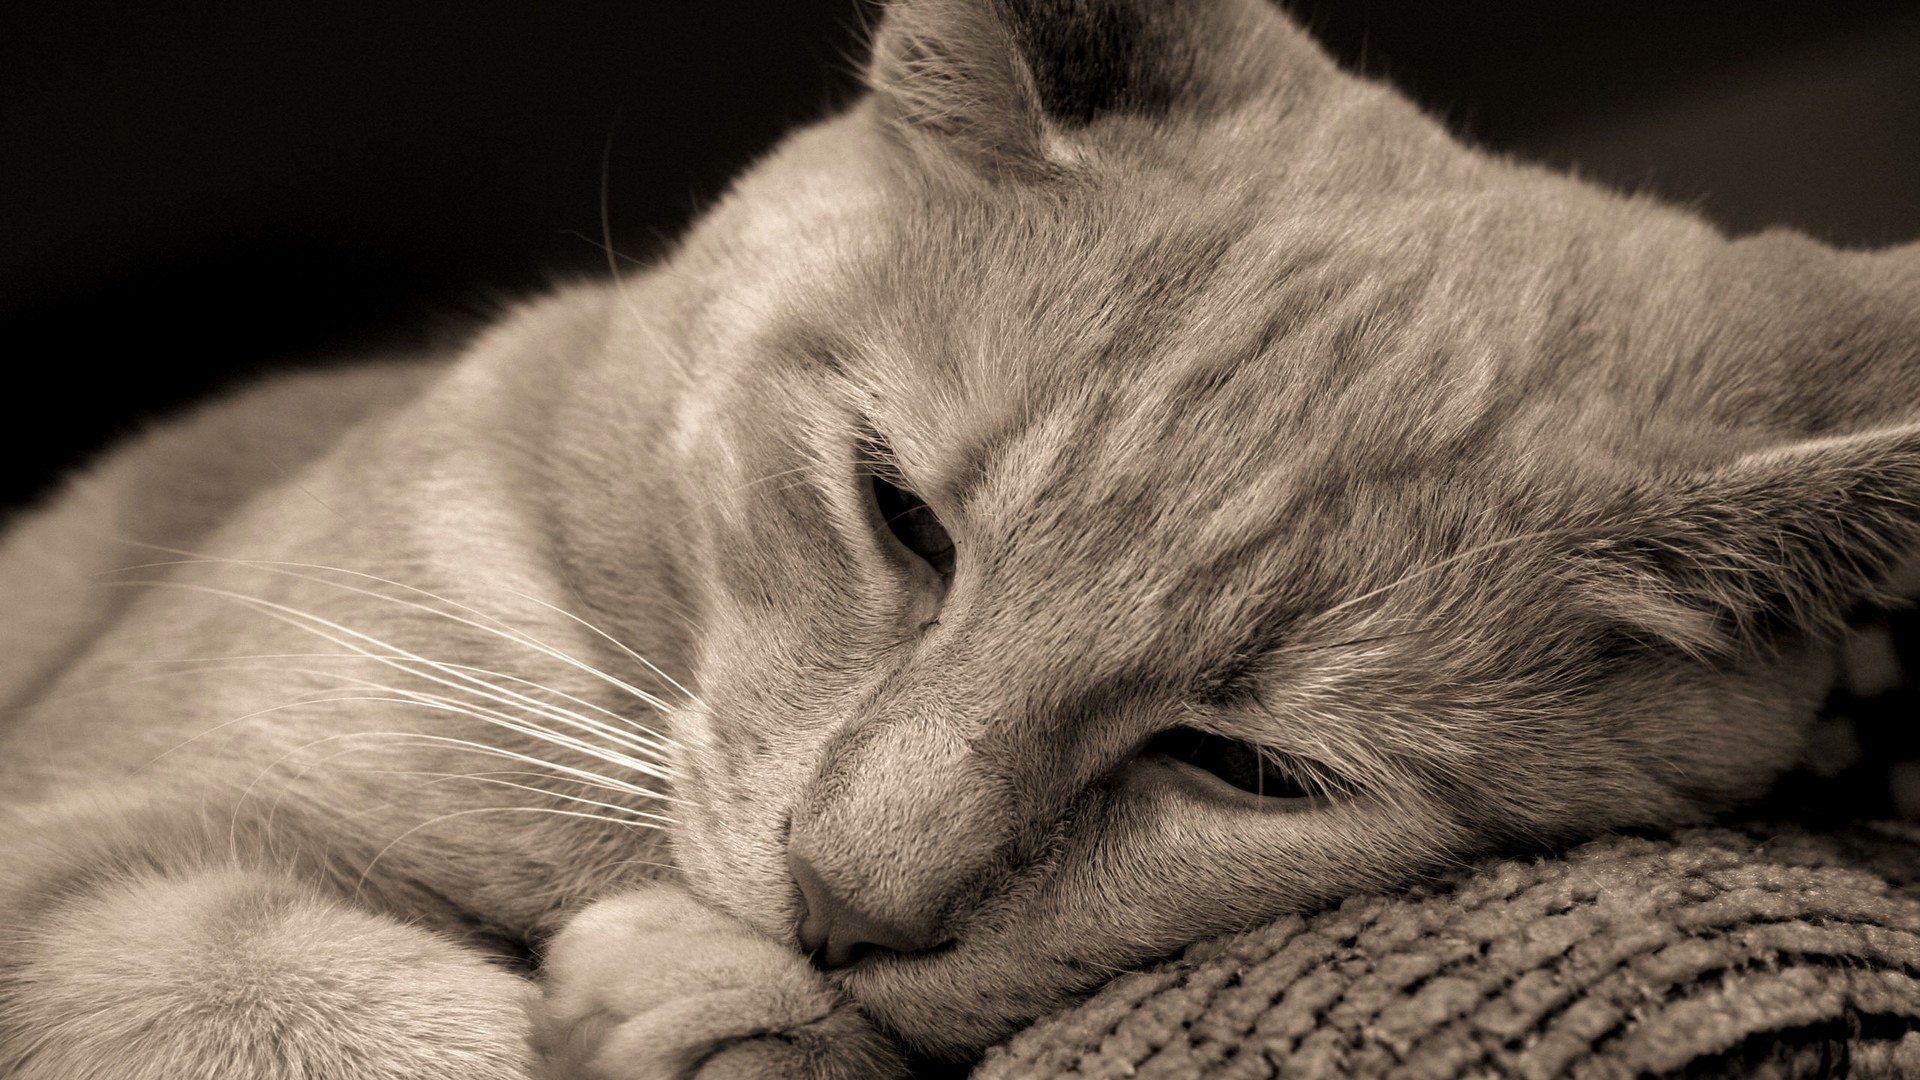 Cat Hd Wallpapers 1080p 64 Images